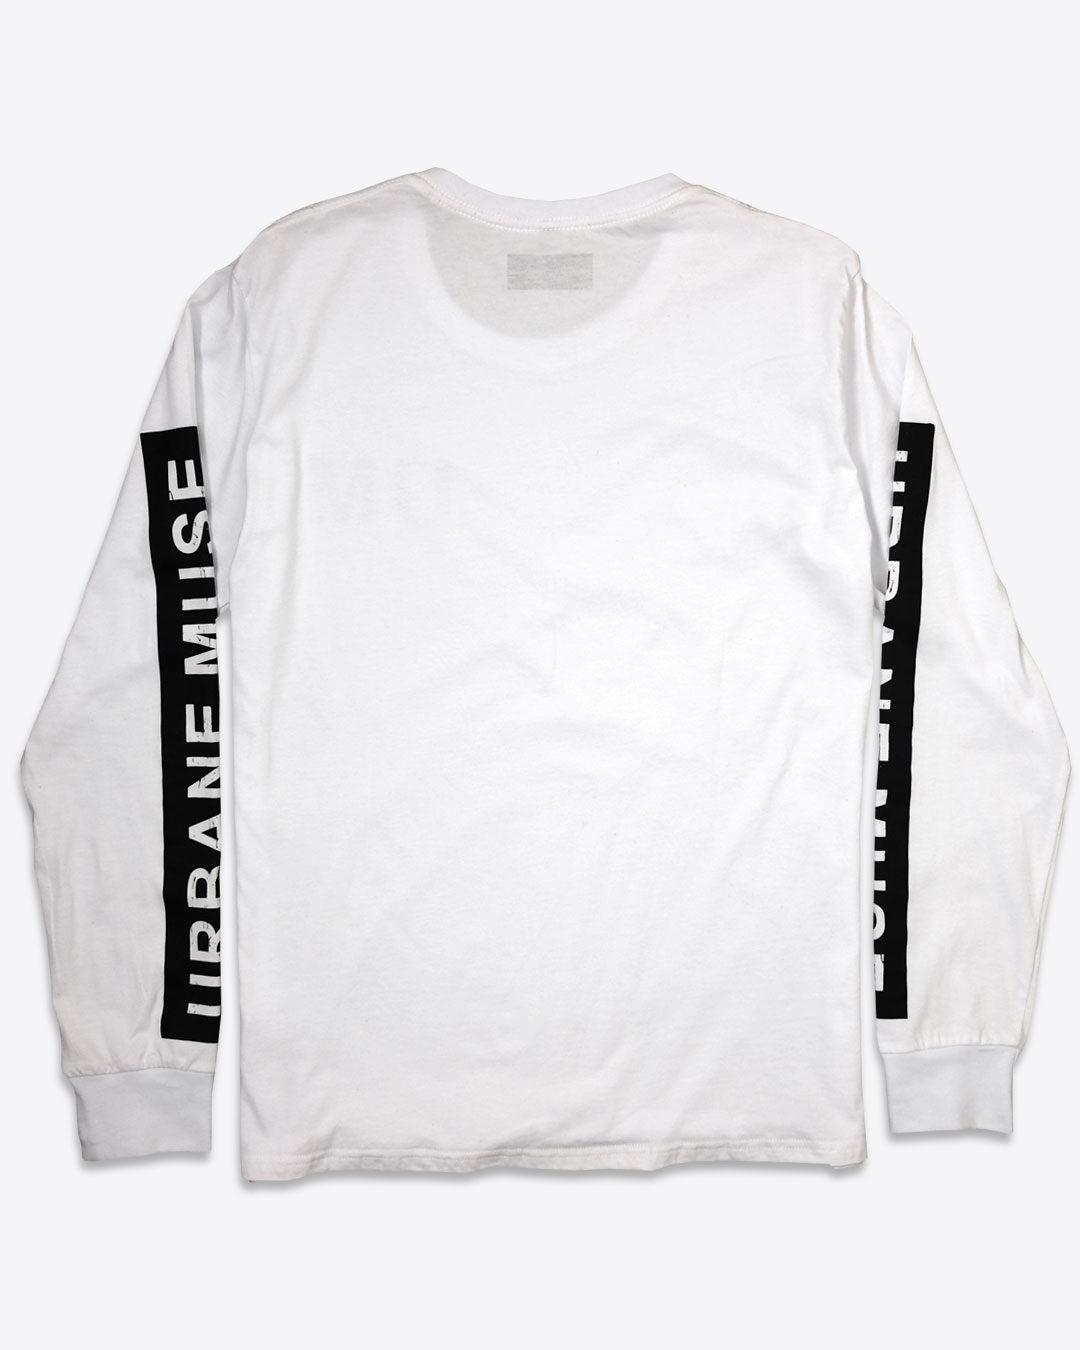 photo-2-URBANE-MUSE-CHRIS-SMITH-LONG-SLEEVE-LOGO-T-SHIRT